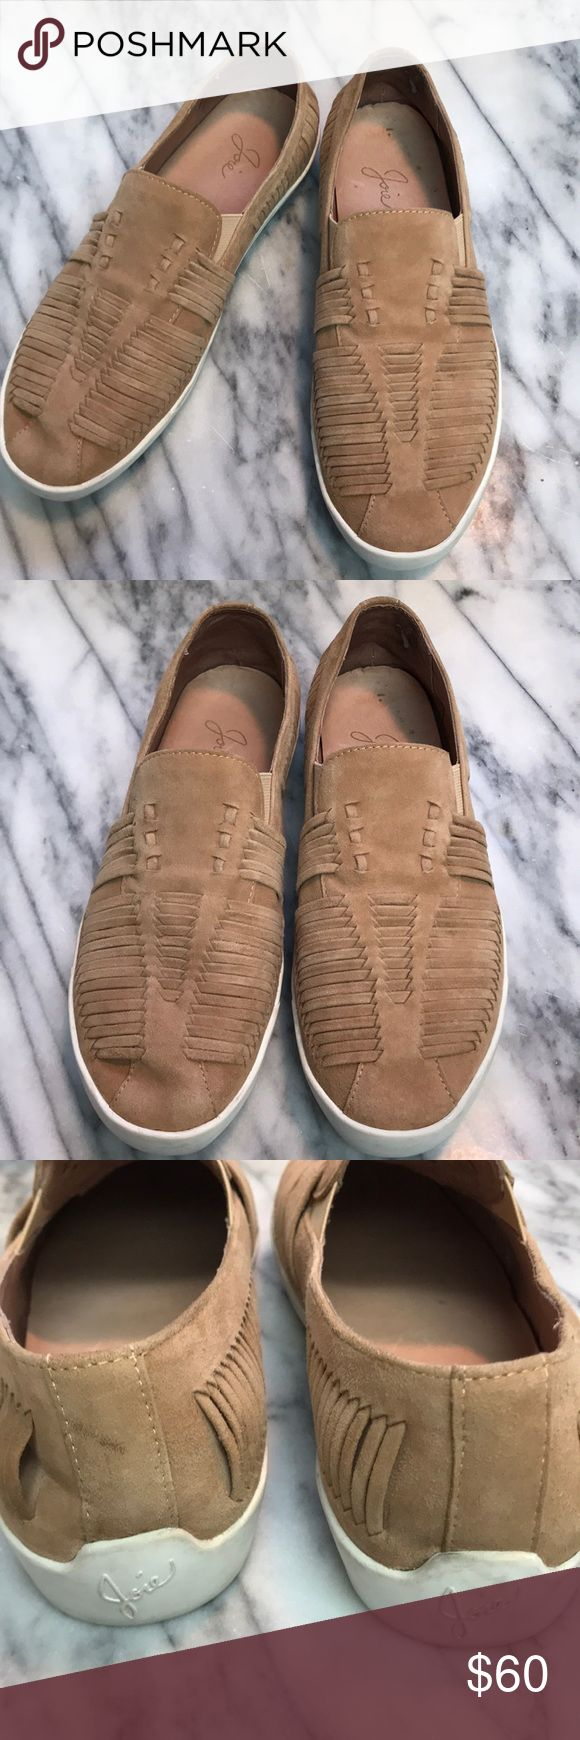 Joie slip ons Light camel color suede slip on tennis shoes by Joie with weaved detail. No box. White soles. Please see pic of left heel with a scuff mark. Soles could use a good wipe down. Joie Shoes Flats & Loafers